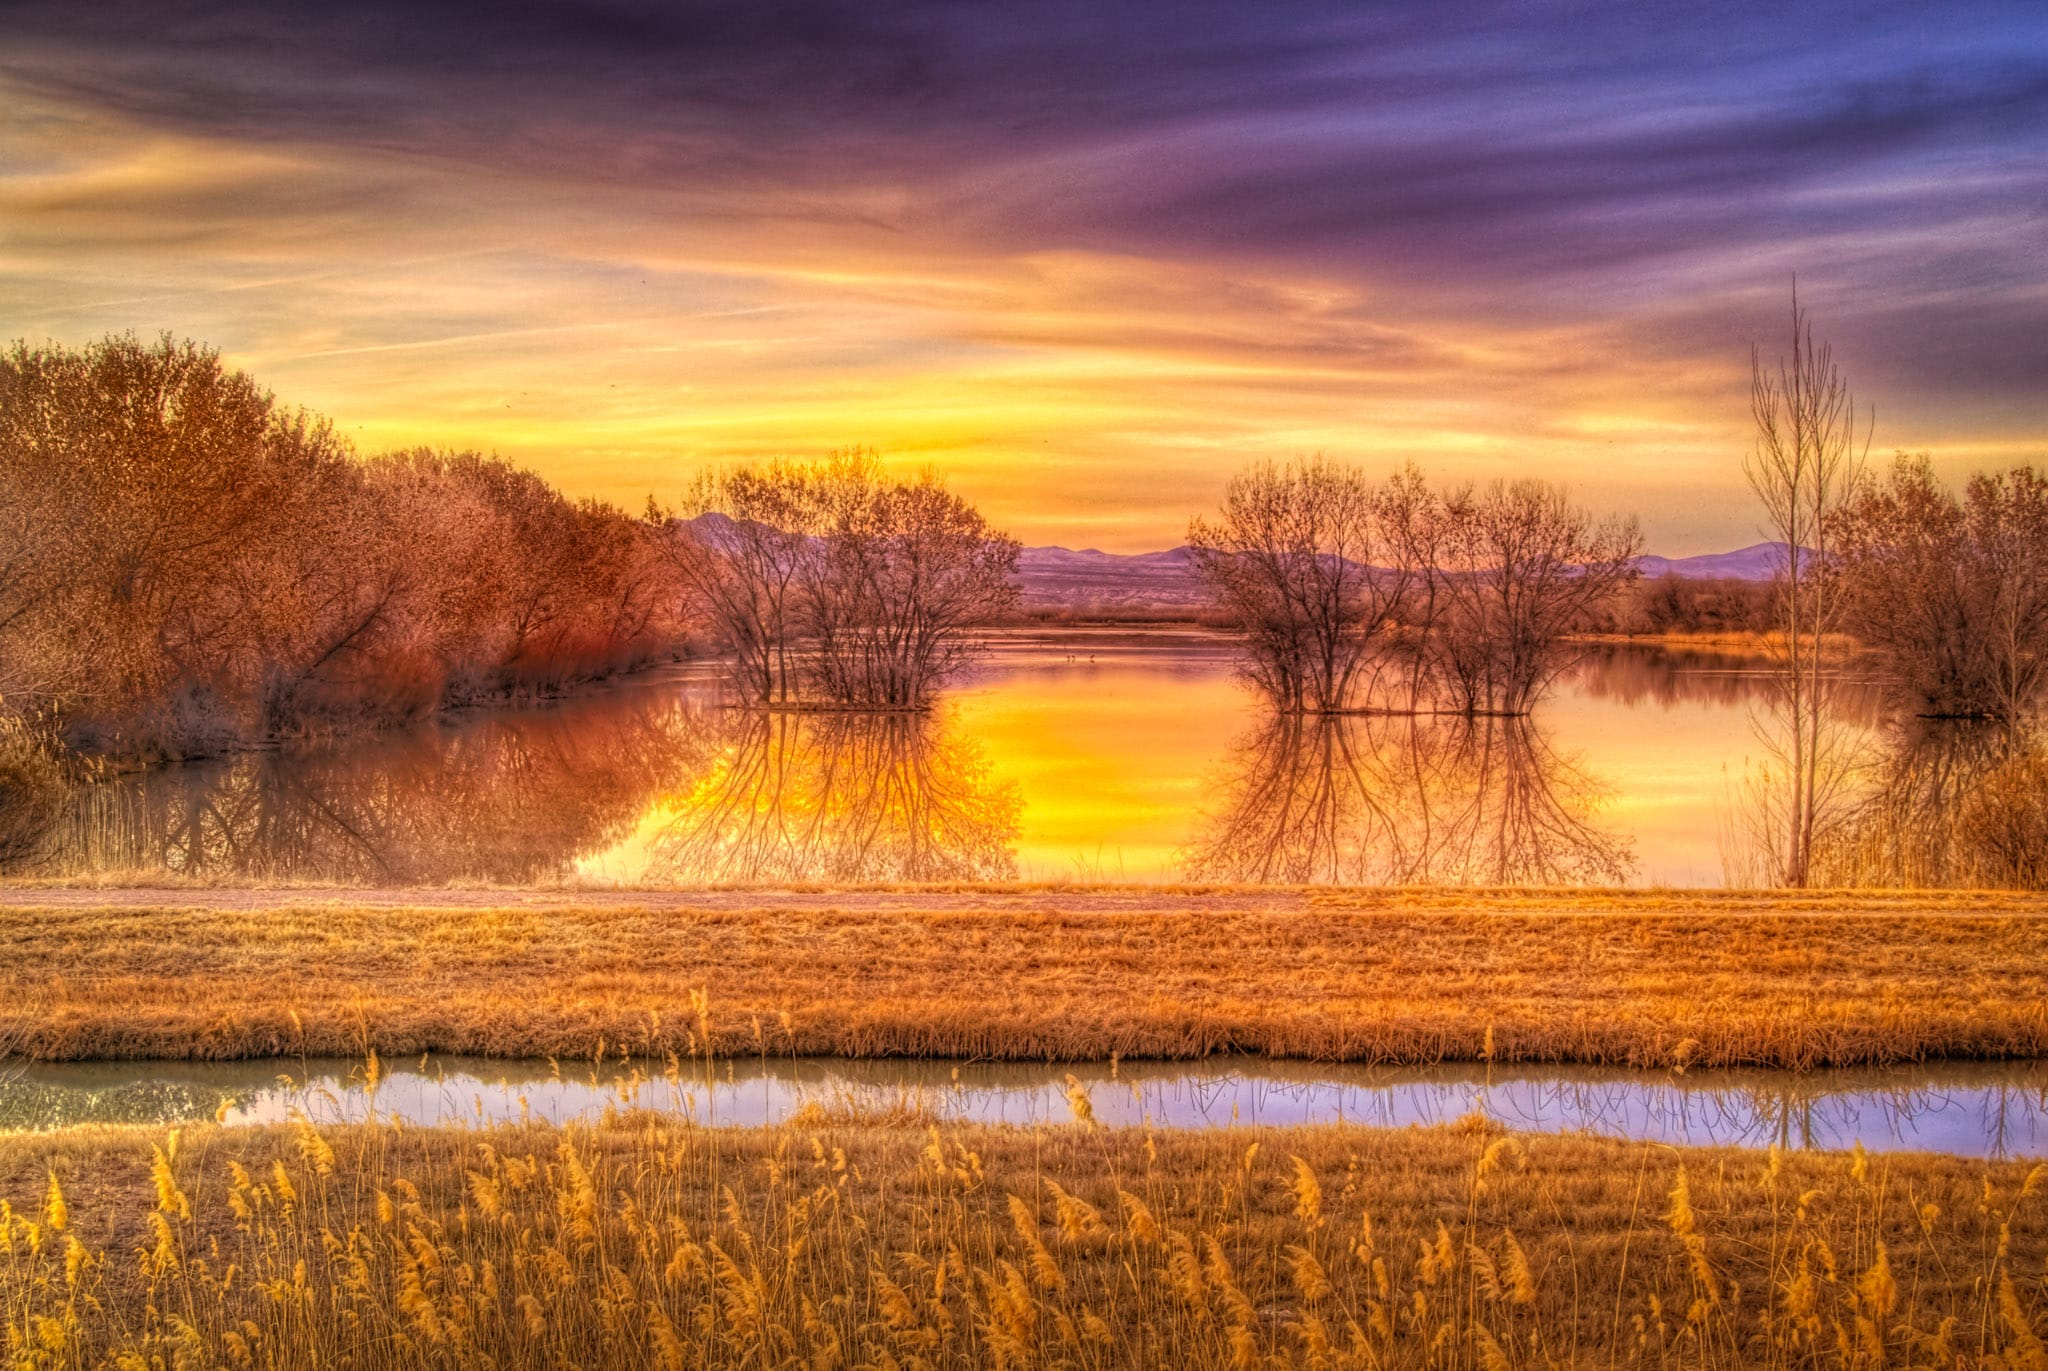 Sunset at one of the ponds of the Bosque del Apache National Wildlife Refuge, near Socorro, New Mexico.